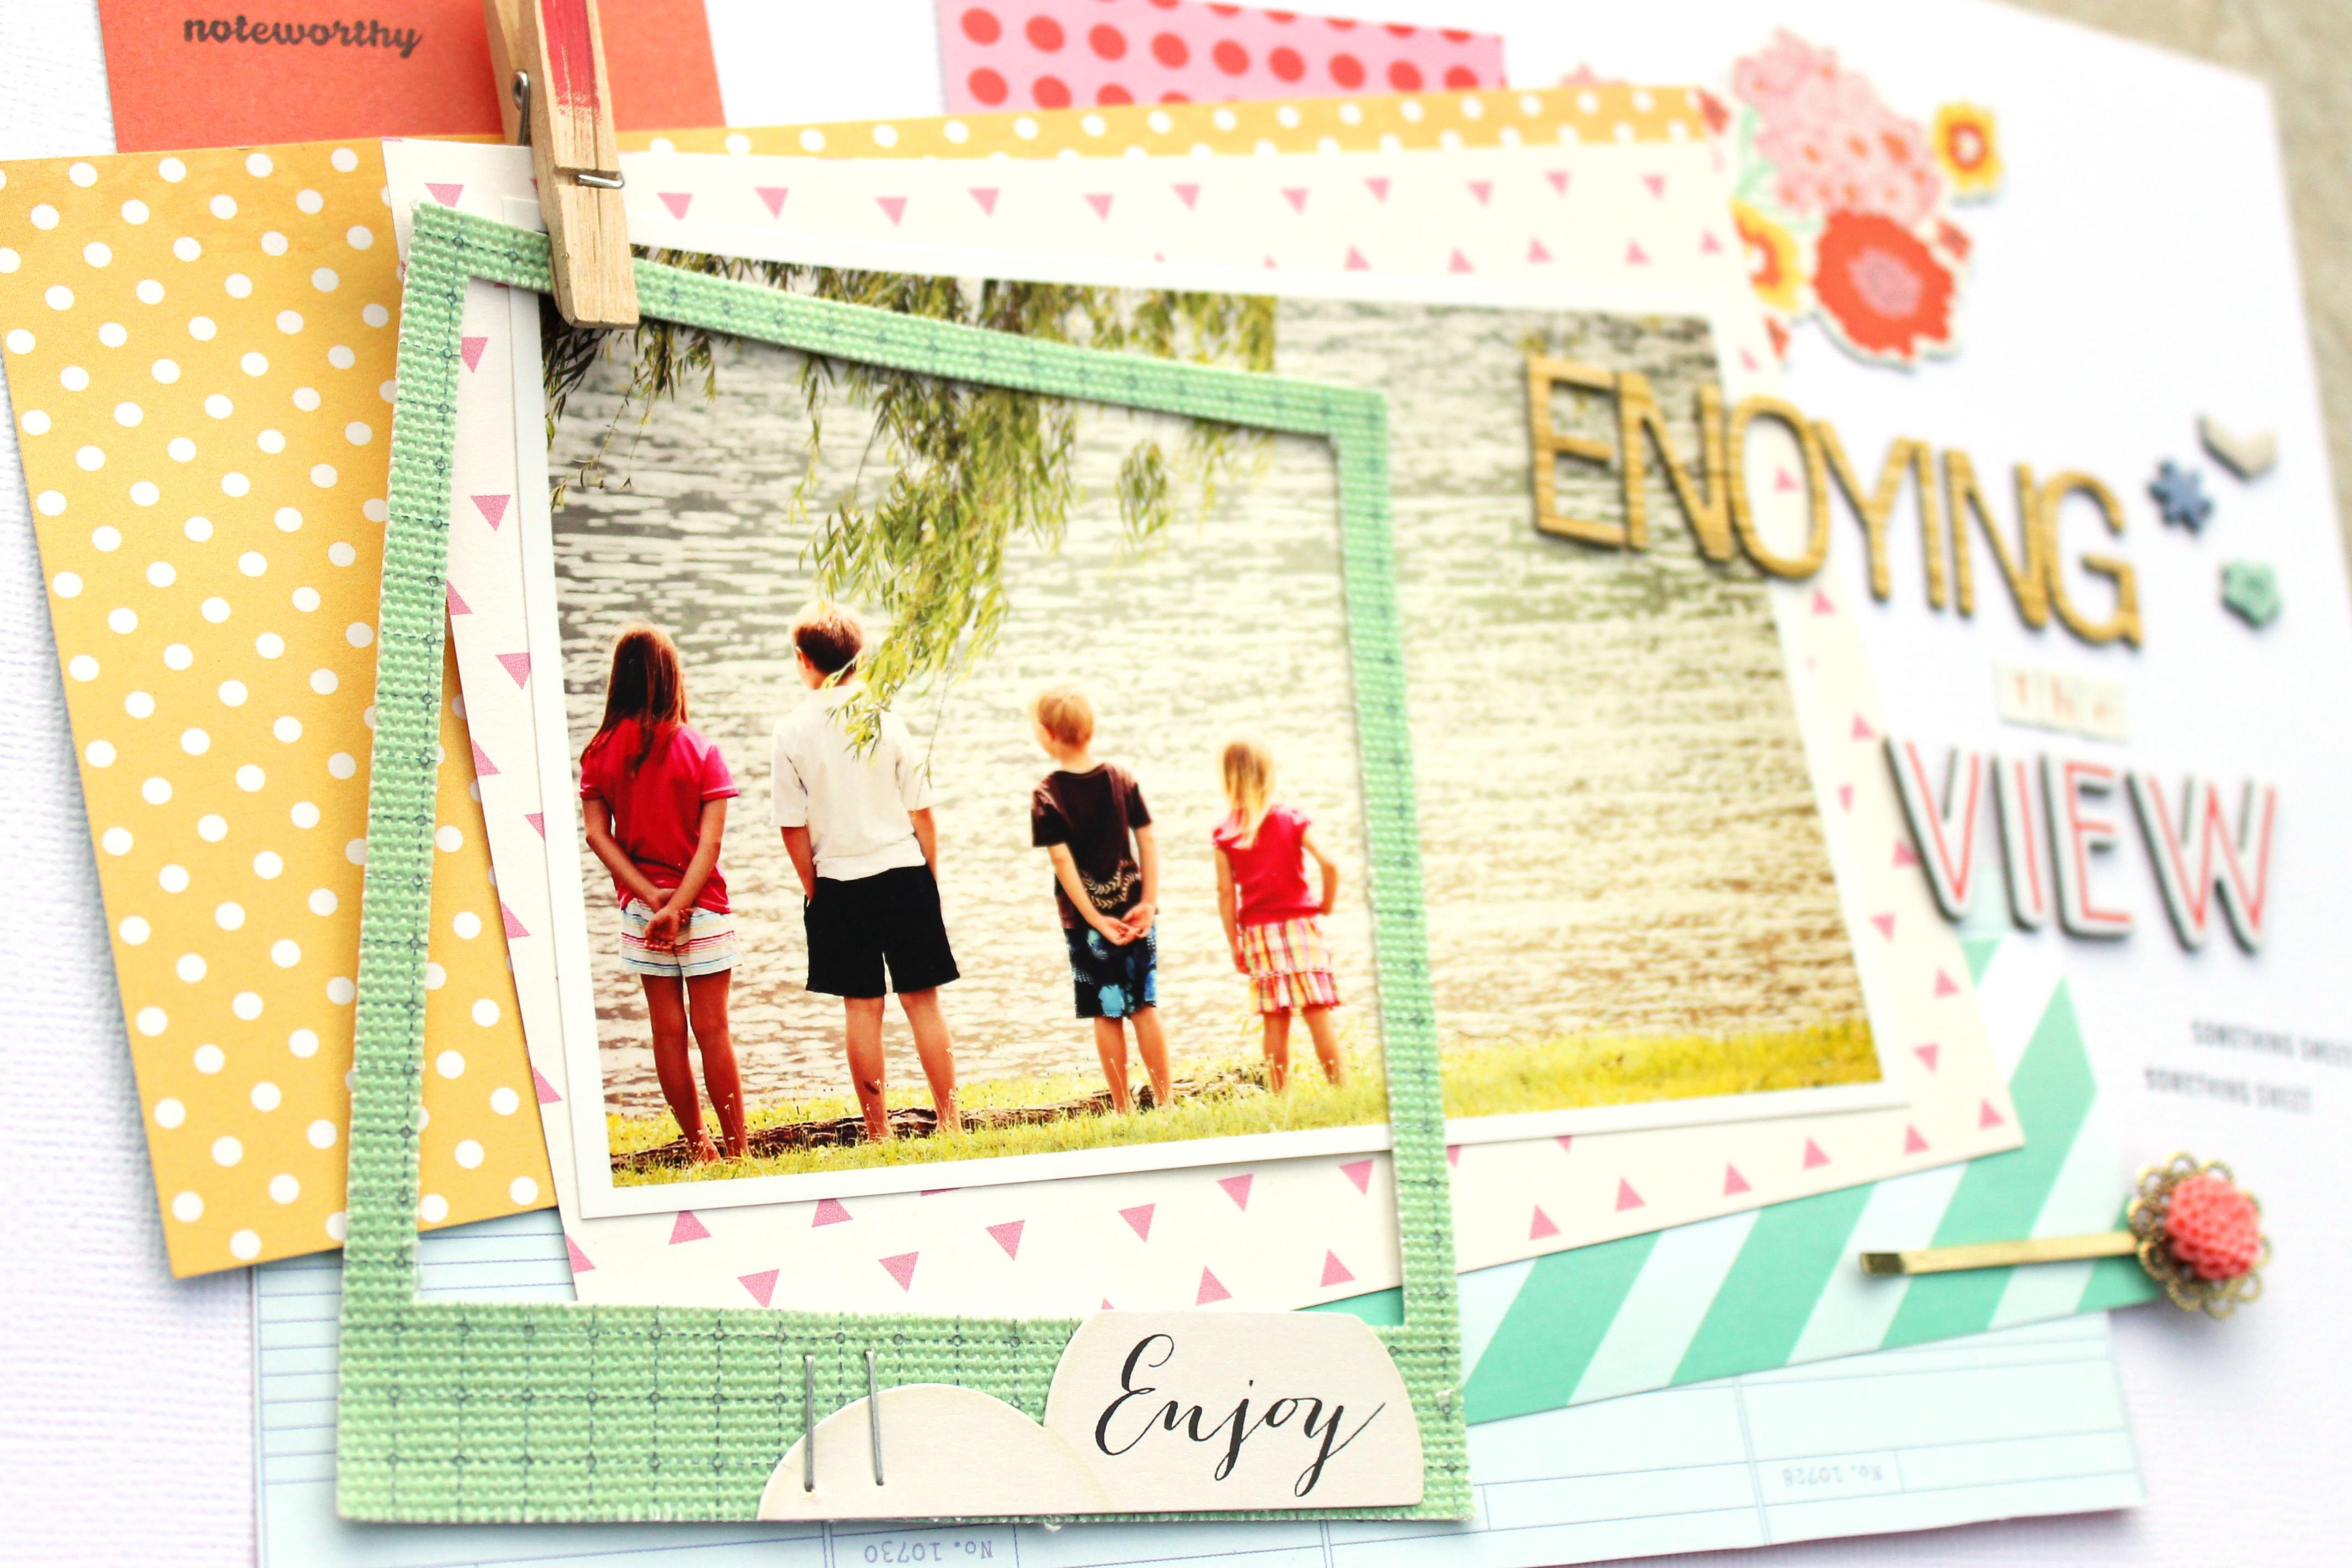 Make your layout shine #scrapbooking